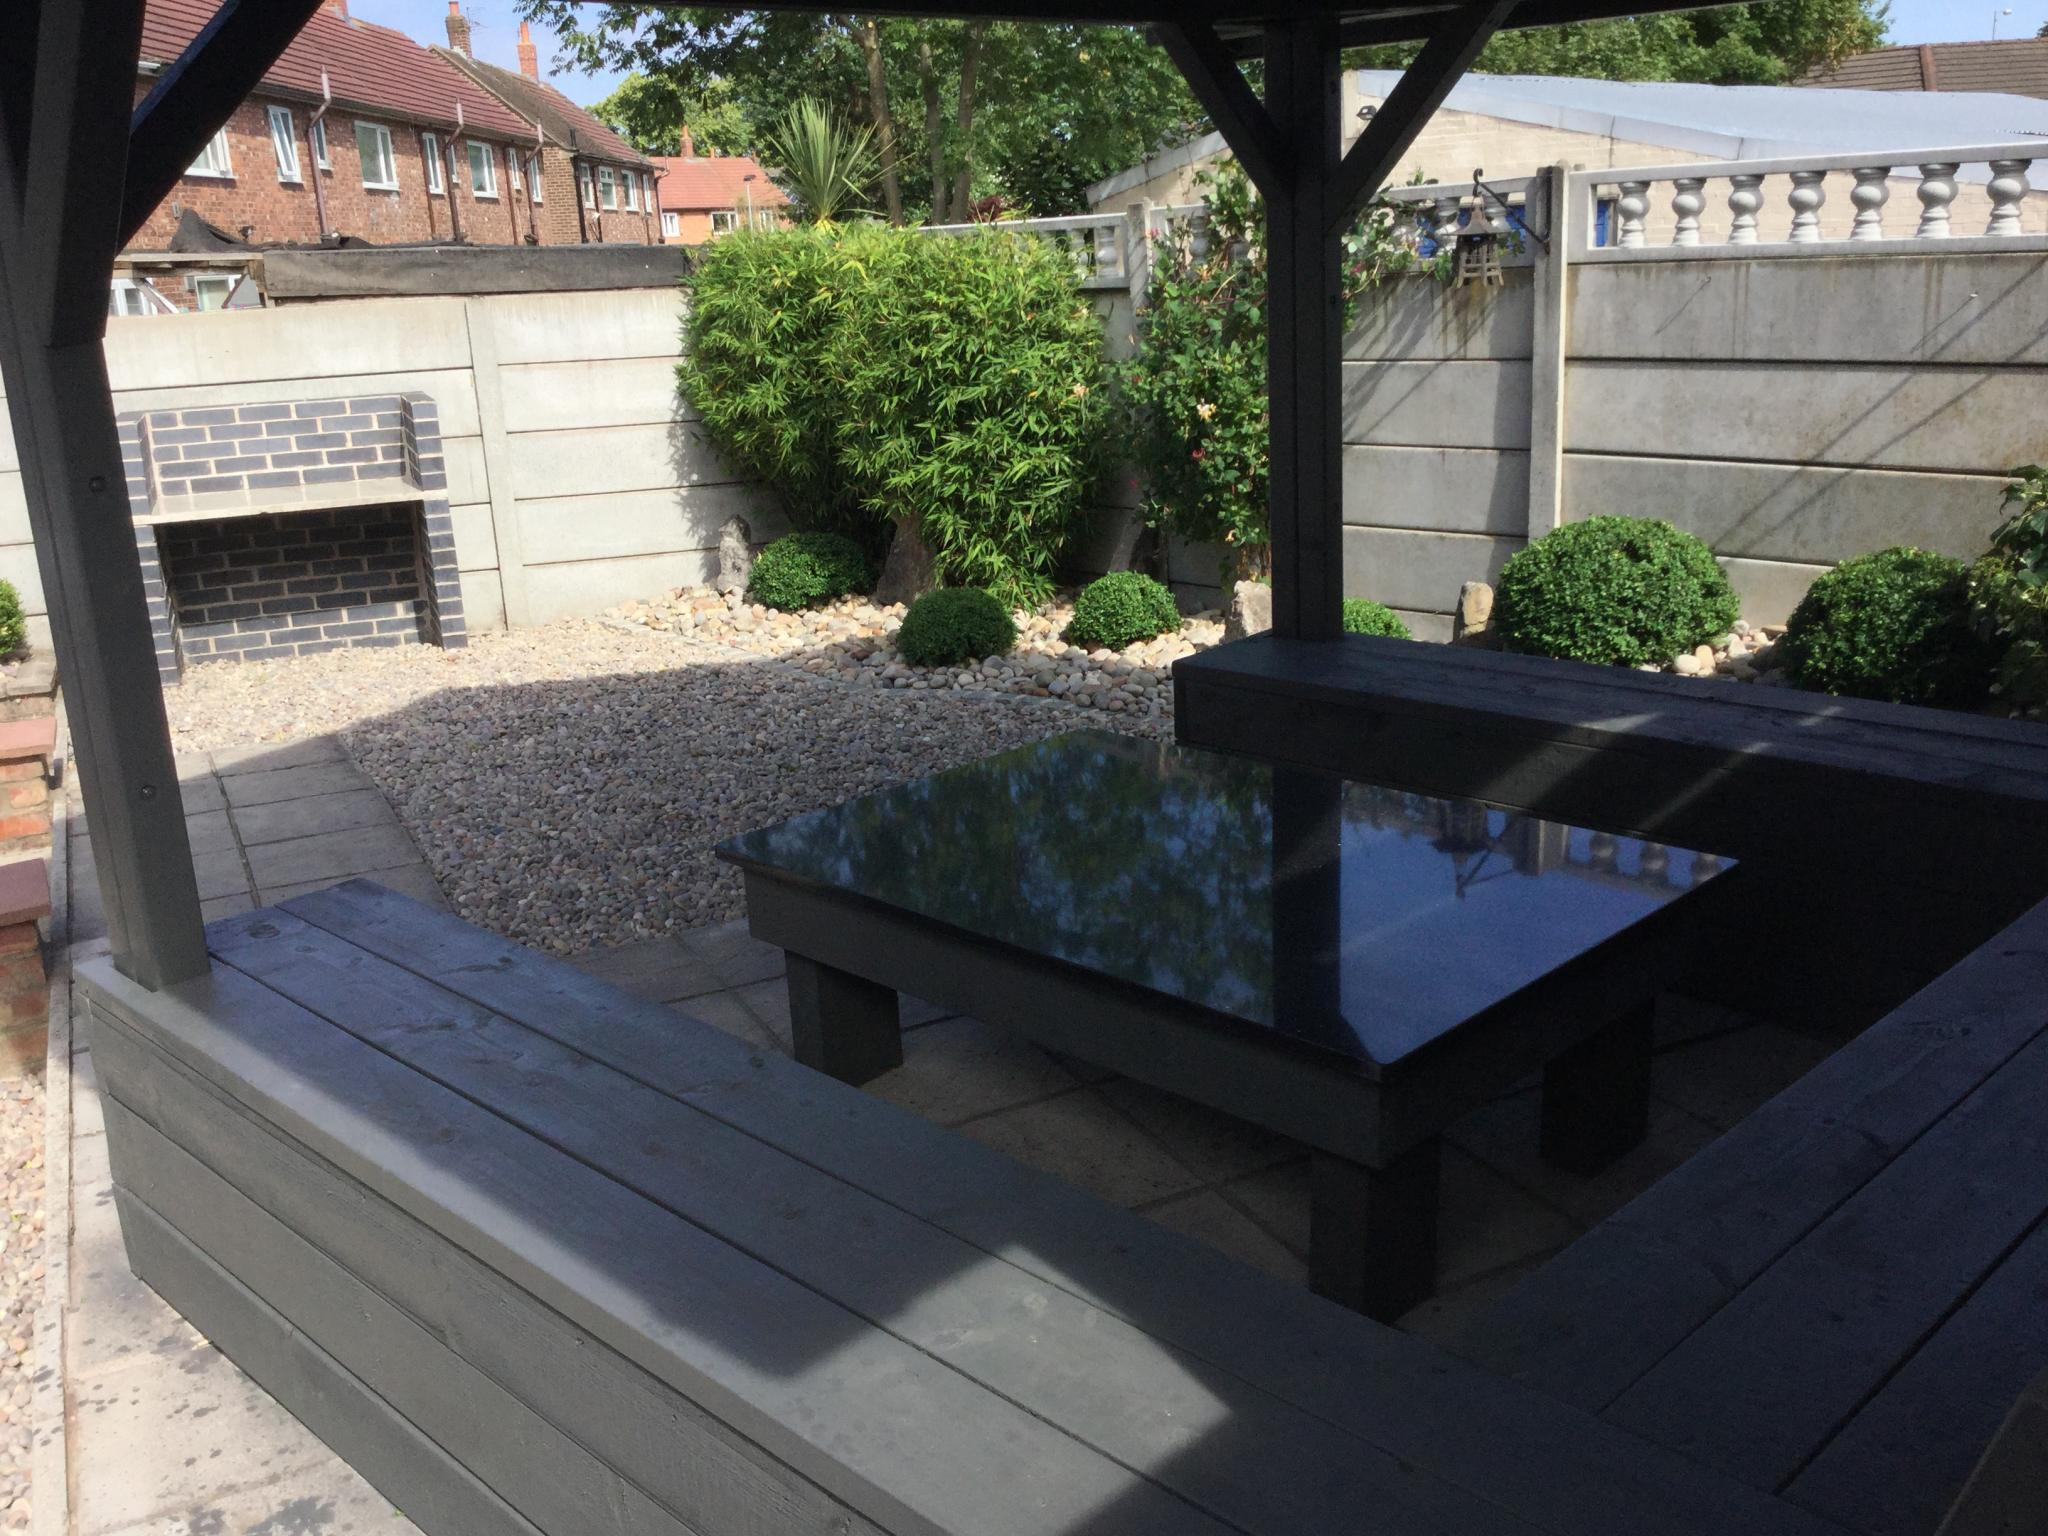 1 Bedroom Semi-detached House To Rent - Rear